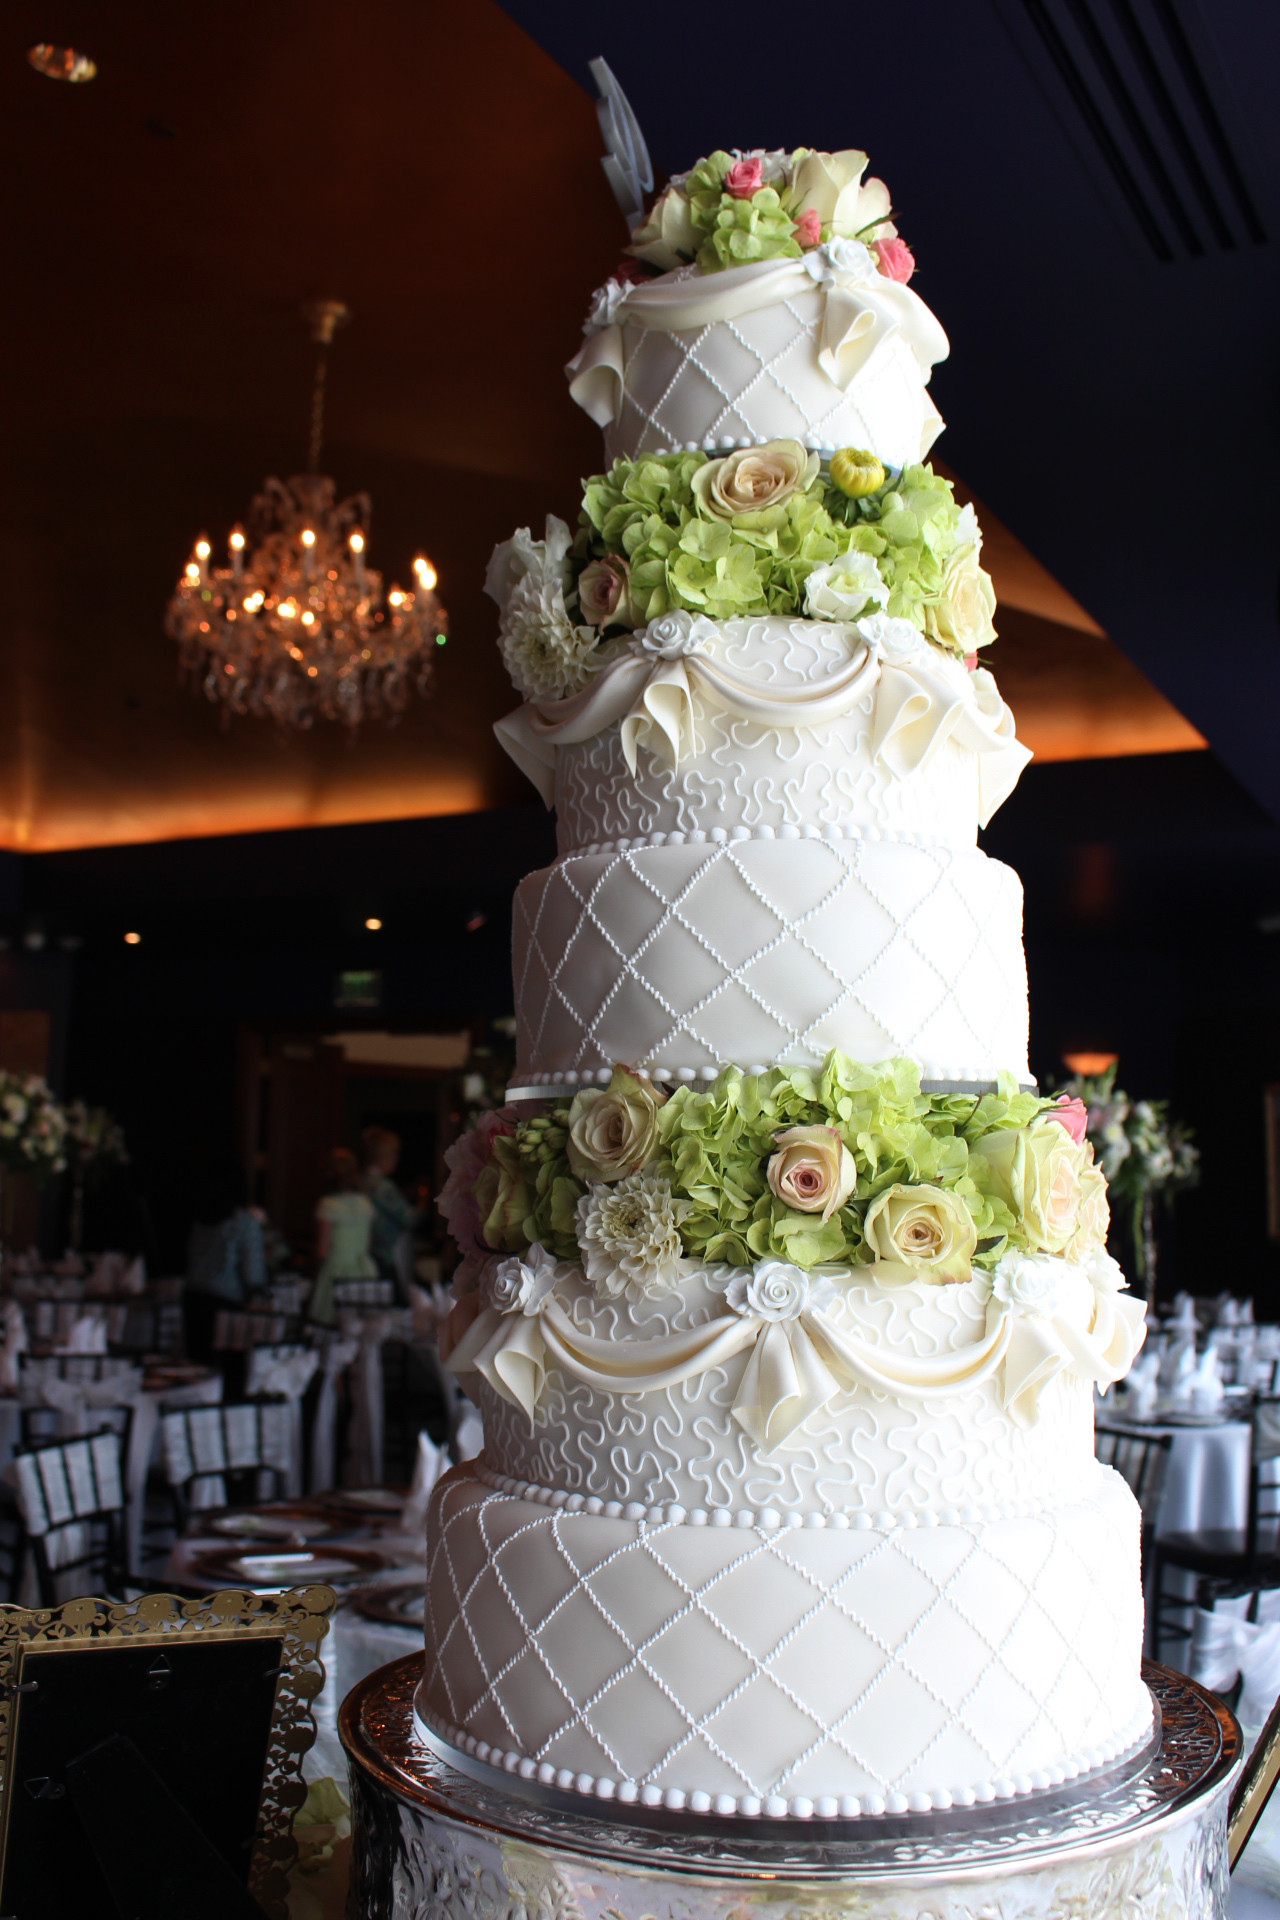 Wedding Cake Recipes For Tiered Cakes  Best Ways to Use Fresh Flowers on your Wedding Cake